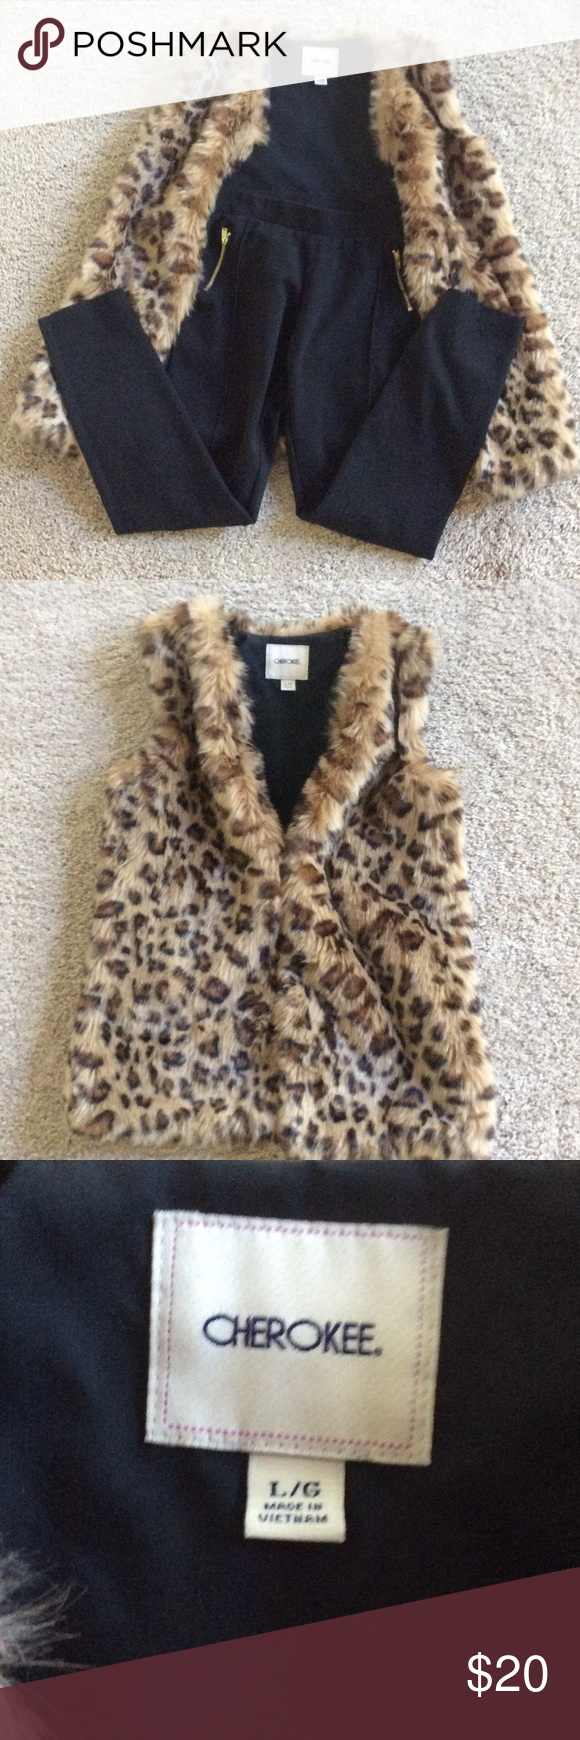 Cherokee leopard print vest and black pants Cherokee furry leopard print vest and black pants.  Pants are stretchy, pull on with cute gold zipper details.  Outfit worn once, great condition.  Goes great with Michael Kors boots I have listed.  Smoke and pet free home.  Both girls' size 10-12. Cherokee Jackets & Coats Vests